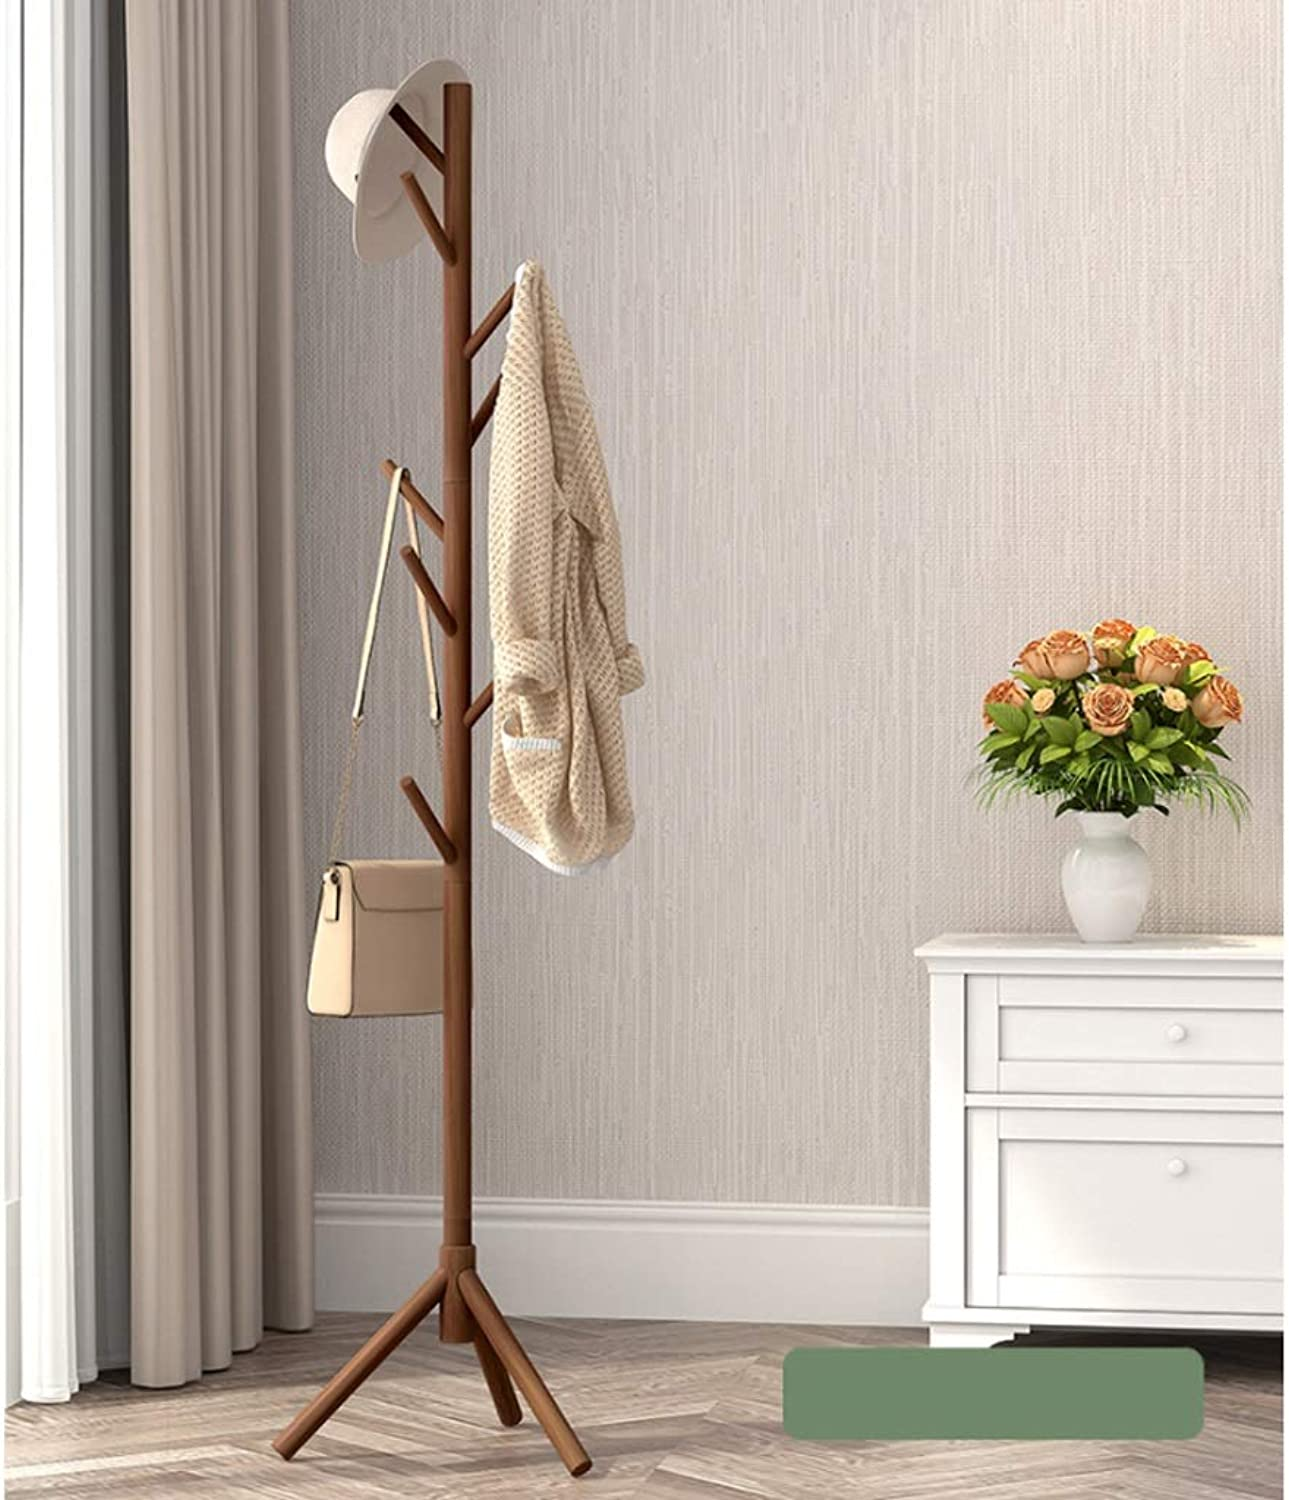 Clothes Stand Floor Bedroom Hanger Coat Rack Simple Clothes Shelf Solid Wood Bag Rack Simple Modern Single Pole with 8 Hooks for Clothes Scarves and Hats 175CM(H) Coat Rack (color   G)